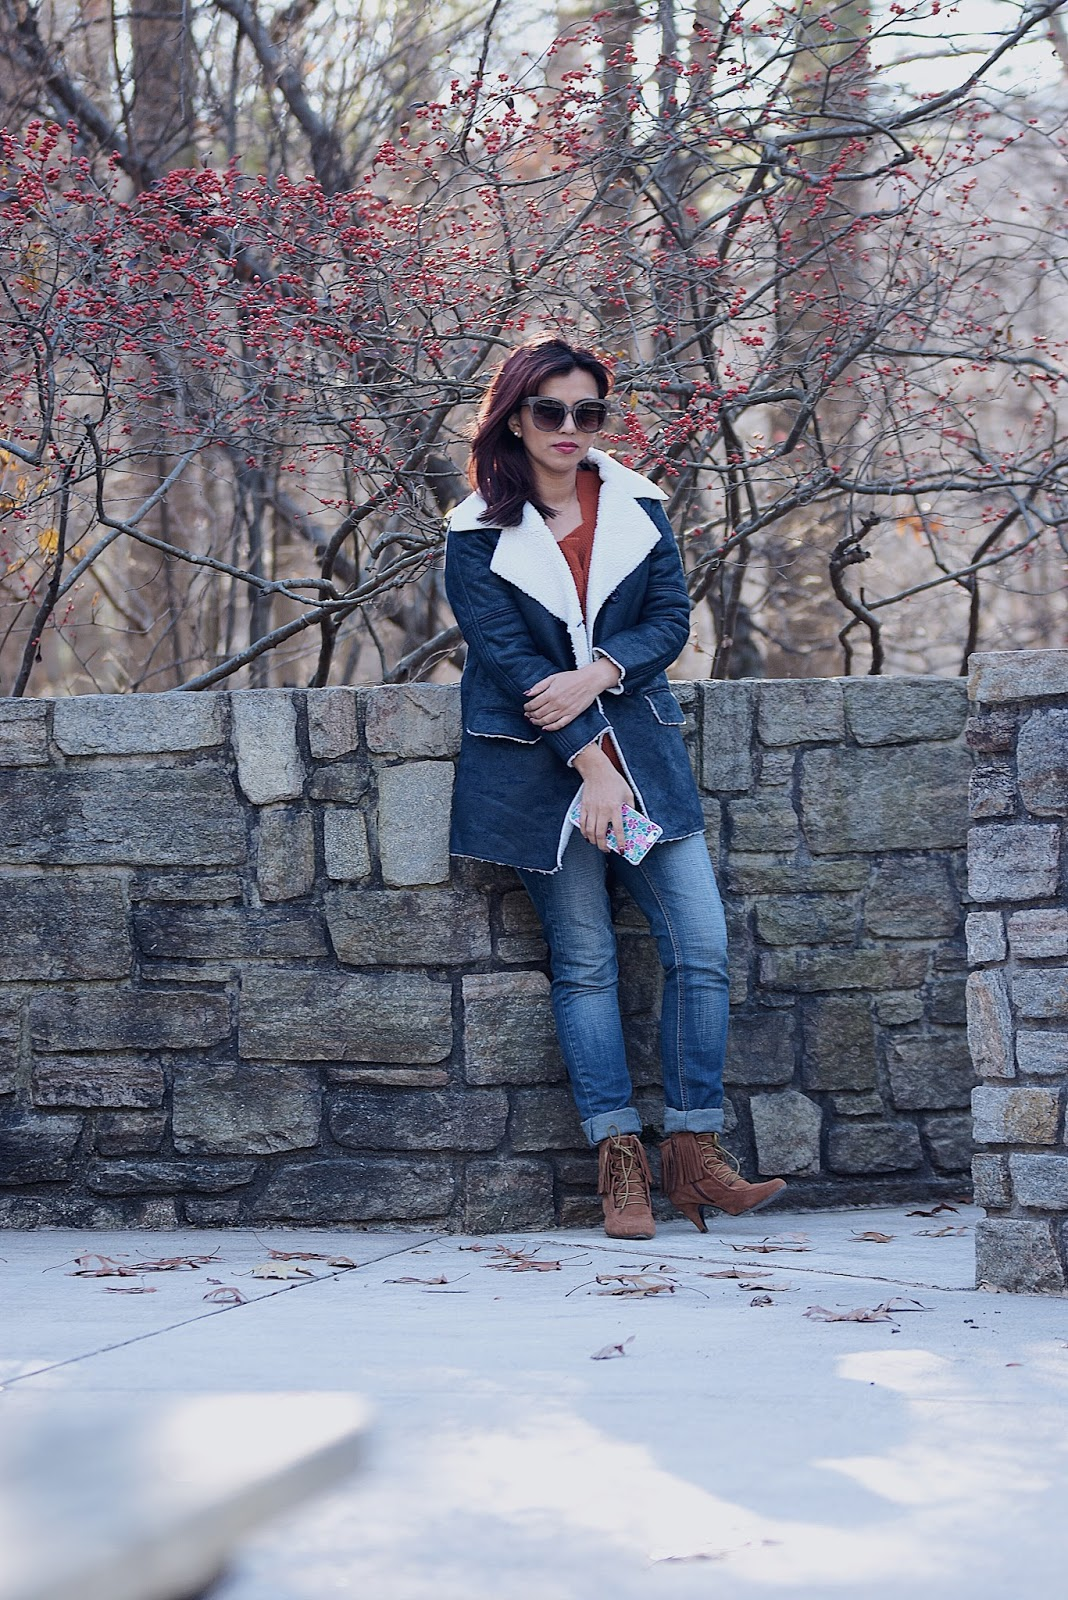 December Here We Go by Mari Estilo  Traveling to Greenbier State Park, Maryland ft. JollyChic.com Wearing: Coat: Jolly Chic Jeans: GAP Sweater: Choies Boots: DSW